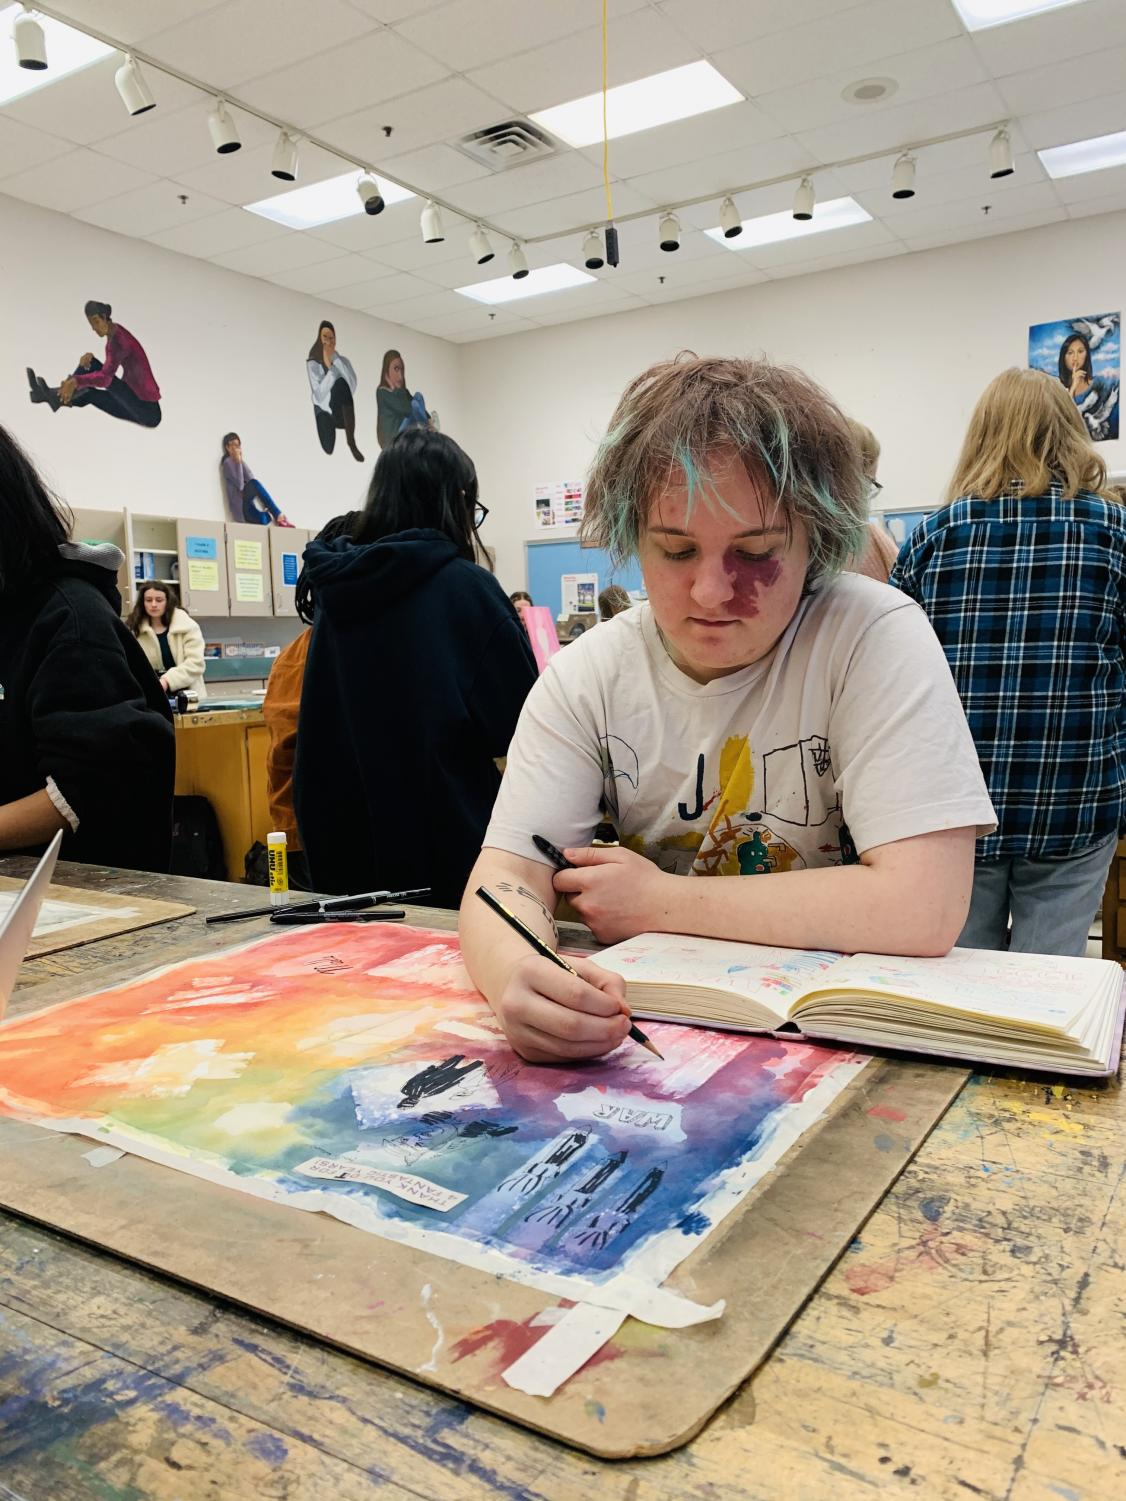 WCHS senior Markus Silvertree paints in his 4th period class, AP Art Studio, for his sustained investigation. On this large sheet, a compilation of ideas for new and potential pieces are mixed into one consolidated and designed brainstorming board.